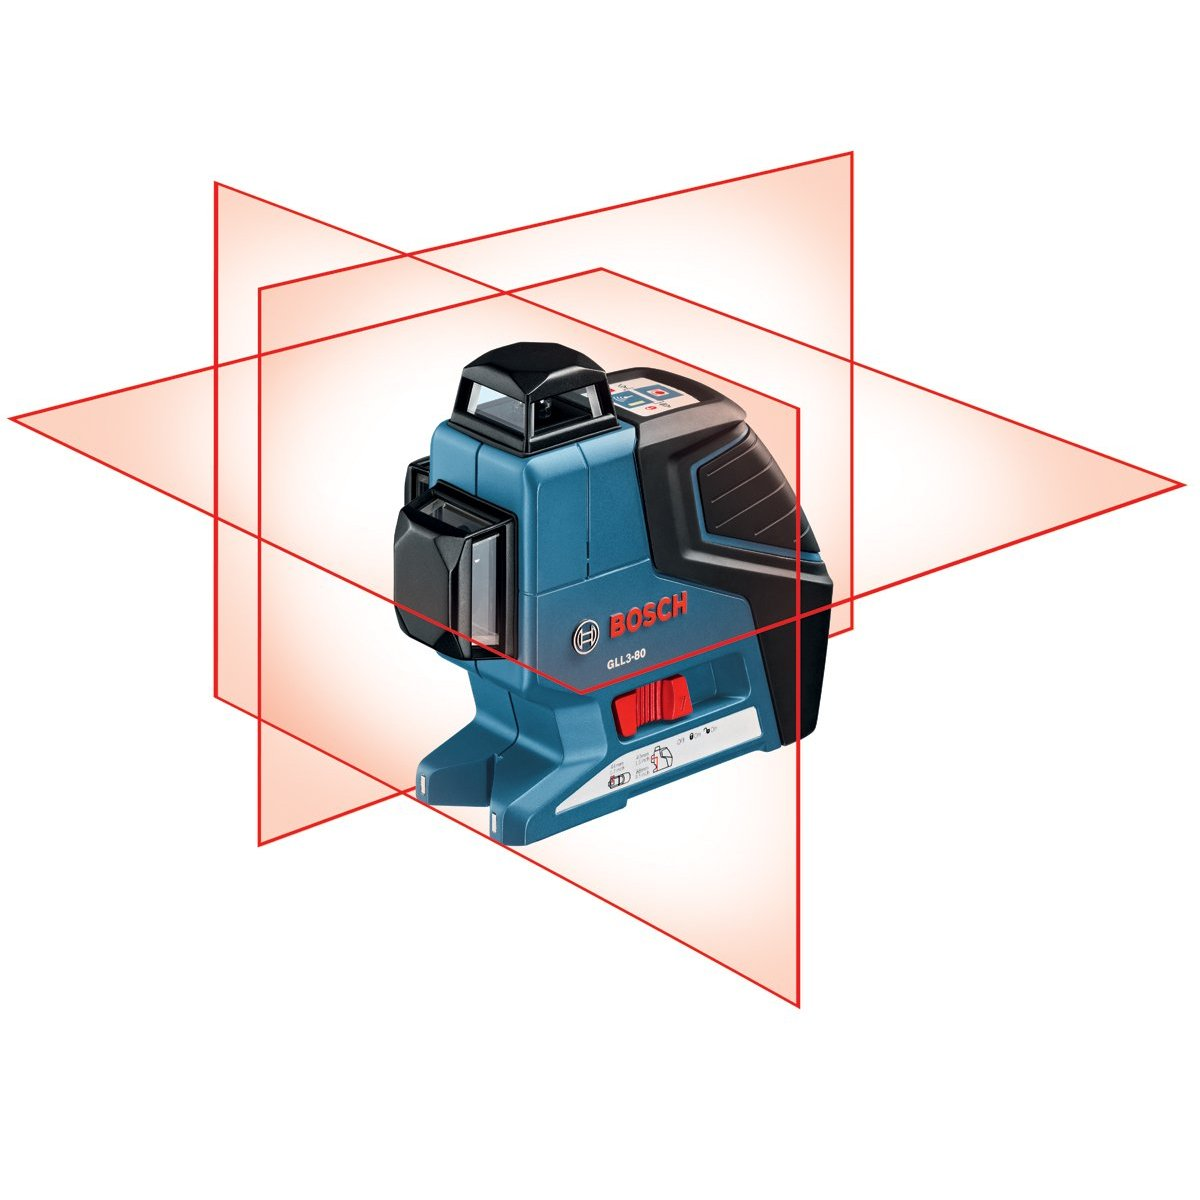 bosch gll 3 80p professional self leveling crossline laser. Black Bedroom Furniture Sets. Home Design Ideas